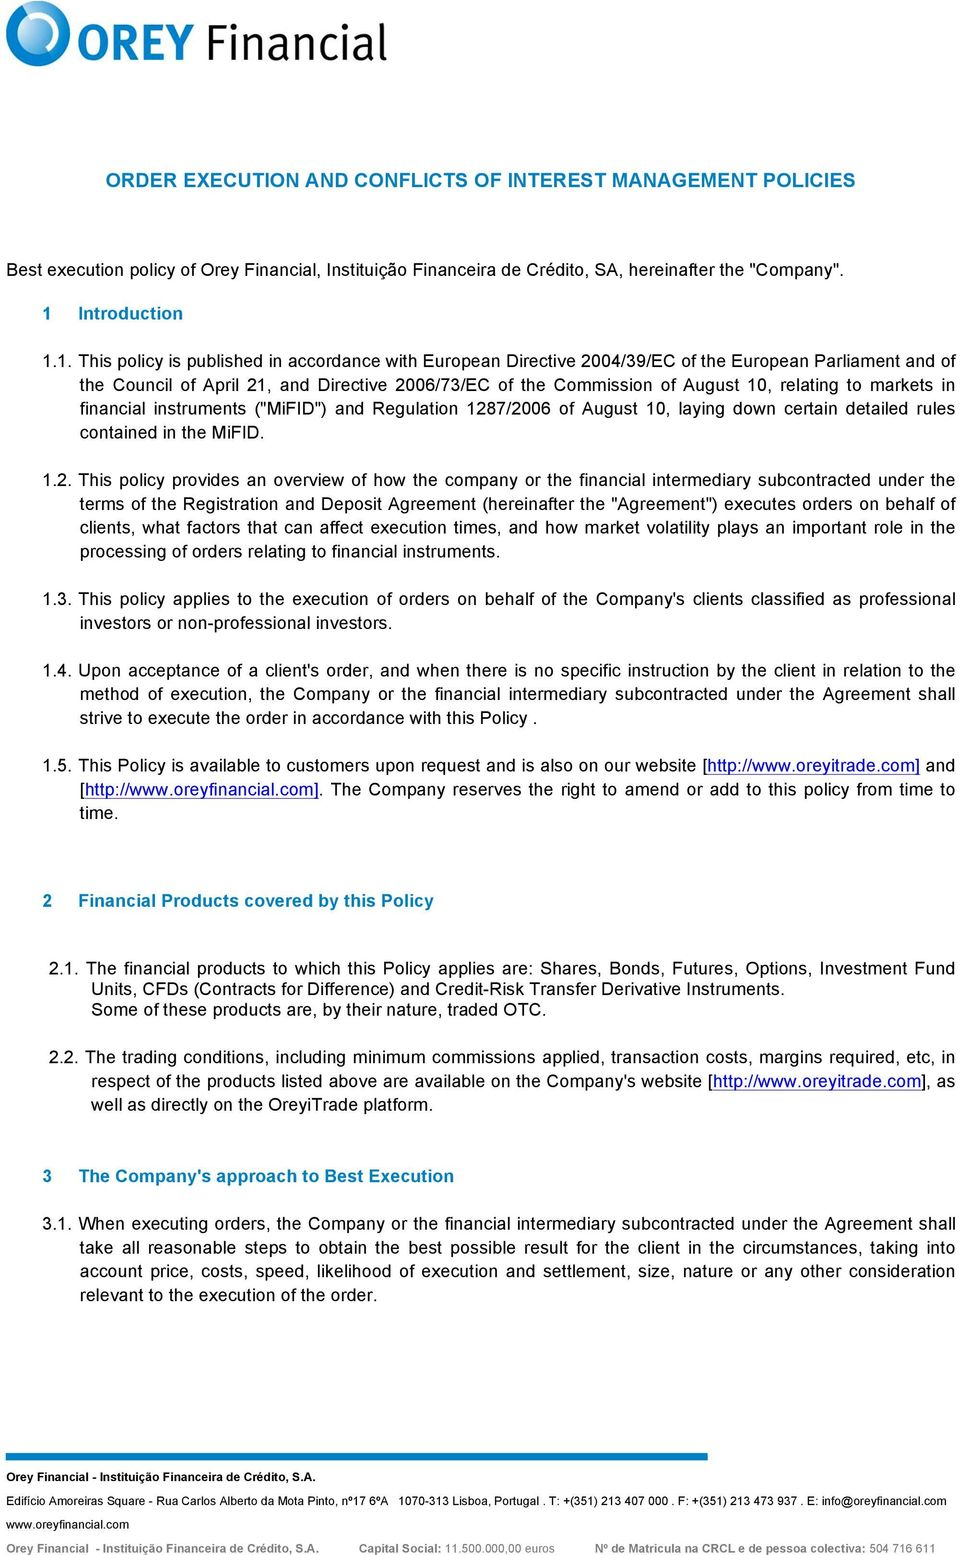 1. This policy is published in accordance with European Directive 2004/39/EC of the European Parliament and of the Council of April 21, and Directive 2006/73/EC of the Commission of August 10,